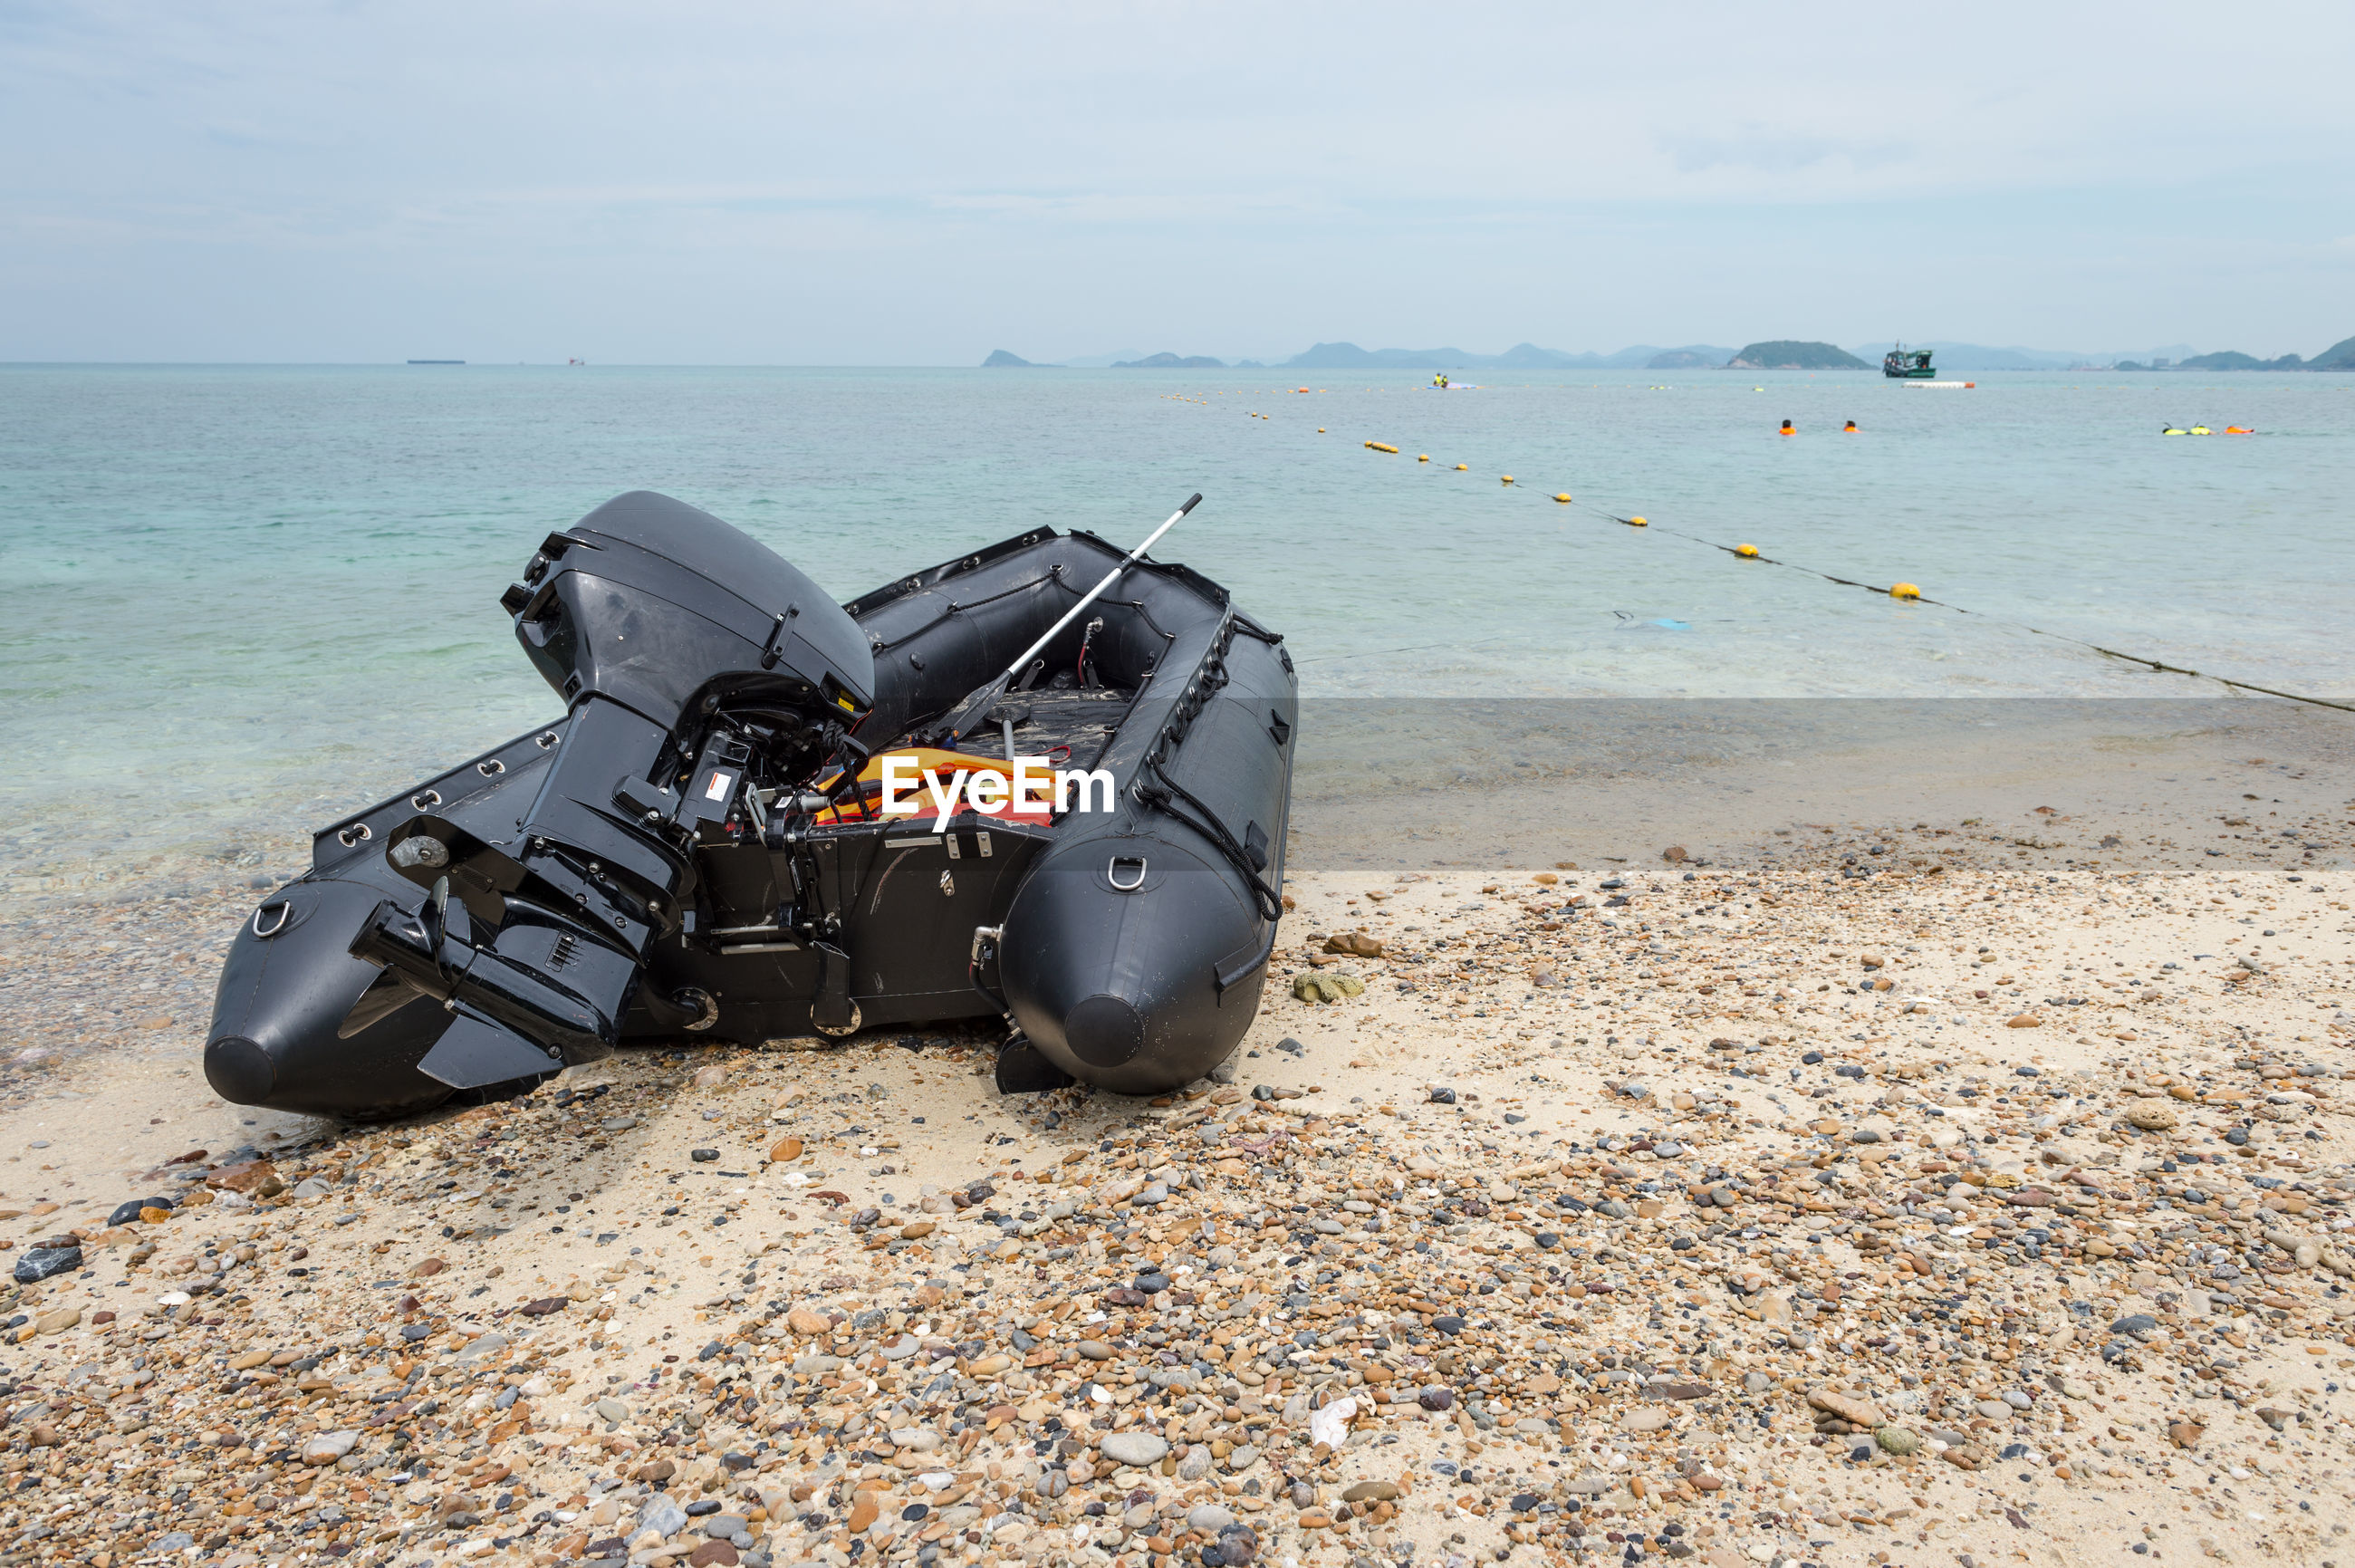 MOTORCYCLE ON SHORE AT BEACH